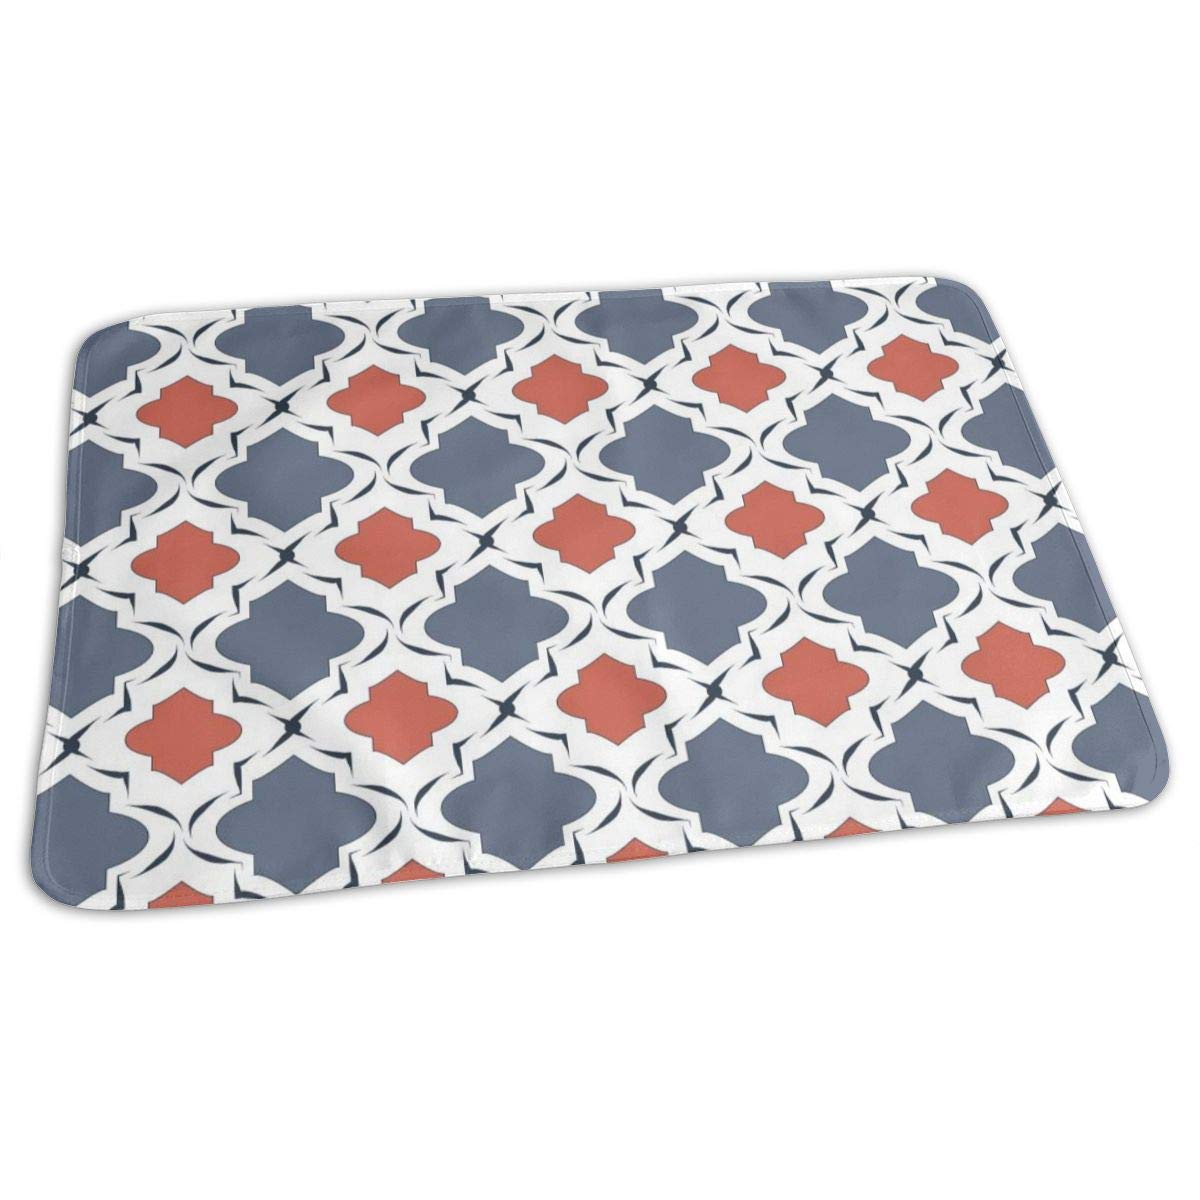 Osvbs Lovely Baby Reusable Waterproof Portable Nautical Quatrefoil with Blue and Coral Colors Vector Changing Pad Home Travel 27.5''x19.7'' by Osvbs